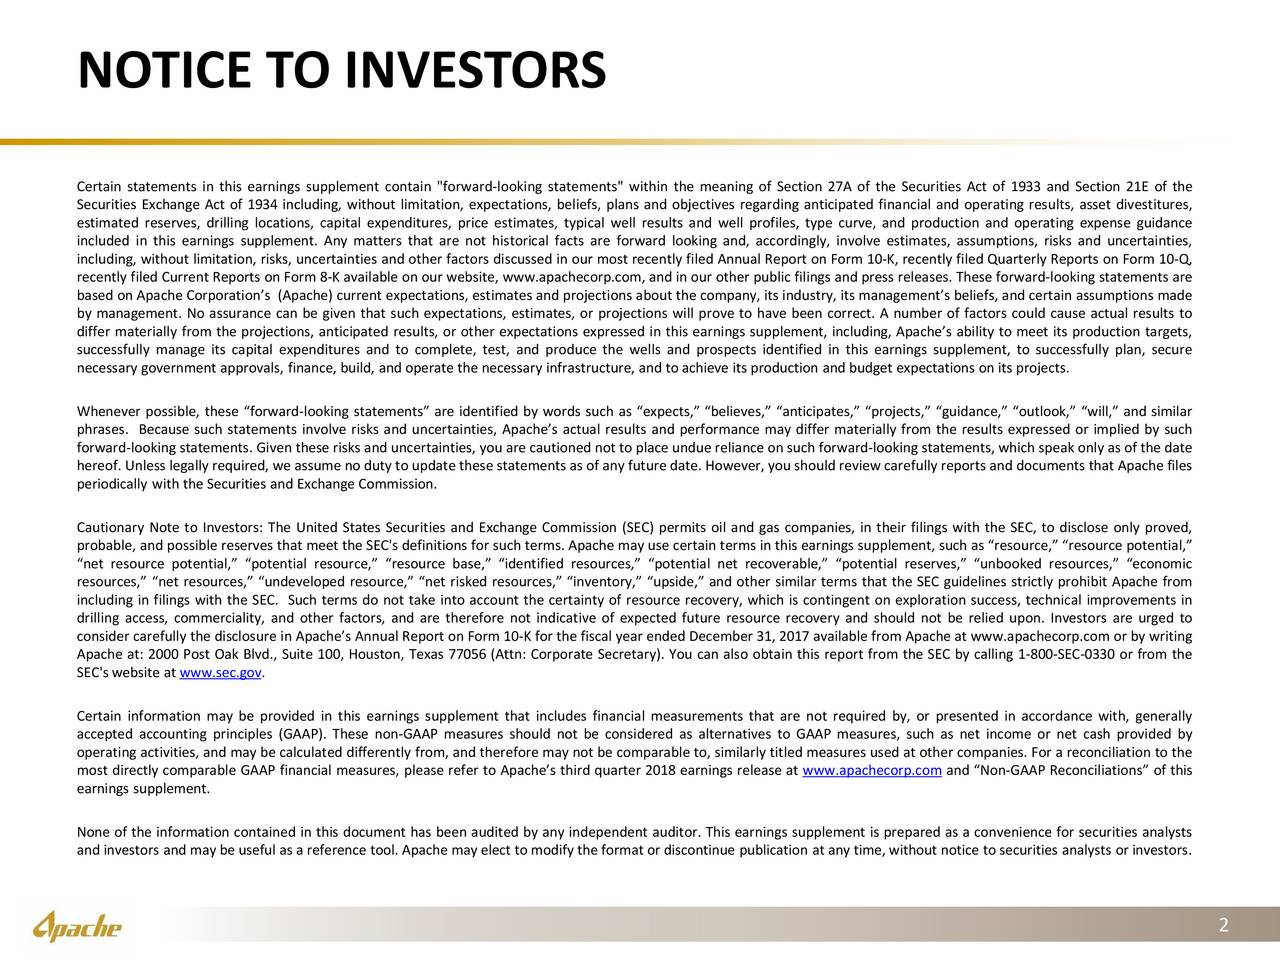 """Certain statements in this earnings supplement contain """"forward-looking statements"""" within the meaning of Section 27A of the Securities Act of 1933 and Section 21E of the Securities Exchange Act of 1934 including, without limitation, expectations, beliefs, plans and objectives regarding anticipated financial and operating results, asset divestitures, estimated reserves, drilling locations, capital expenditures, price estimates, typical well results and well profiles, type curve, and production and operating expense guidance included in this earnings supplement. Any matters that are not historical facts are forward looking and, accordingly, involve estimates, assumptions, risks and uncertainties, including, without limitation, risks, uncertainties and other factors discussed in our most recently filed Annual Report on Form 10-K, recently filed Quarterly Reports on Form 10-Q, recently filed Current Reports on Form 8-K available on our website, www.apachecorp.com, and in our other public filings and press releases. These forward-looking statements are based on Apache Corporation's (Apache) current expectations, estimates and projections about the company, its industry, its management's beliefs, and certain assumptions made by management. No assurance can be given that such expectations, estimates, or projections will prove to have been correct. A number of factors could cause actual results to differ materially from the projections, anticipated results, or other expectations expressed in this earnings supplement, including, Apache's ability to meet its production targets, successfully manage its capital expenditures and to complete, test, and produce the wells and prospects identified in this earnings supplement, to successfully plan, secure necessary government approvals, finance, build, and operate the necessary infrastructure, and to achieve its production and budget expectations on its projects. Whenever possible, these """"forward-looking statements"""" are identified b"""